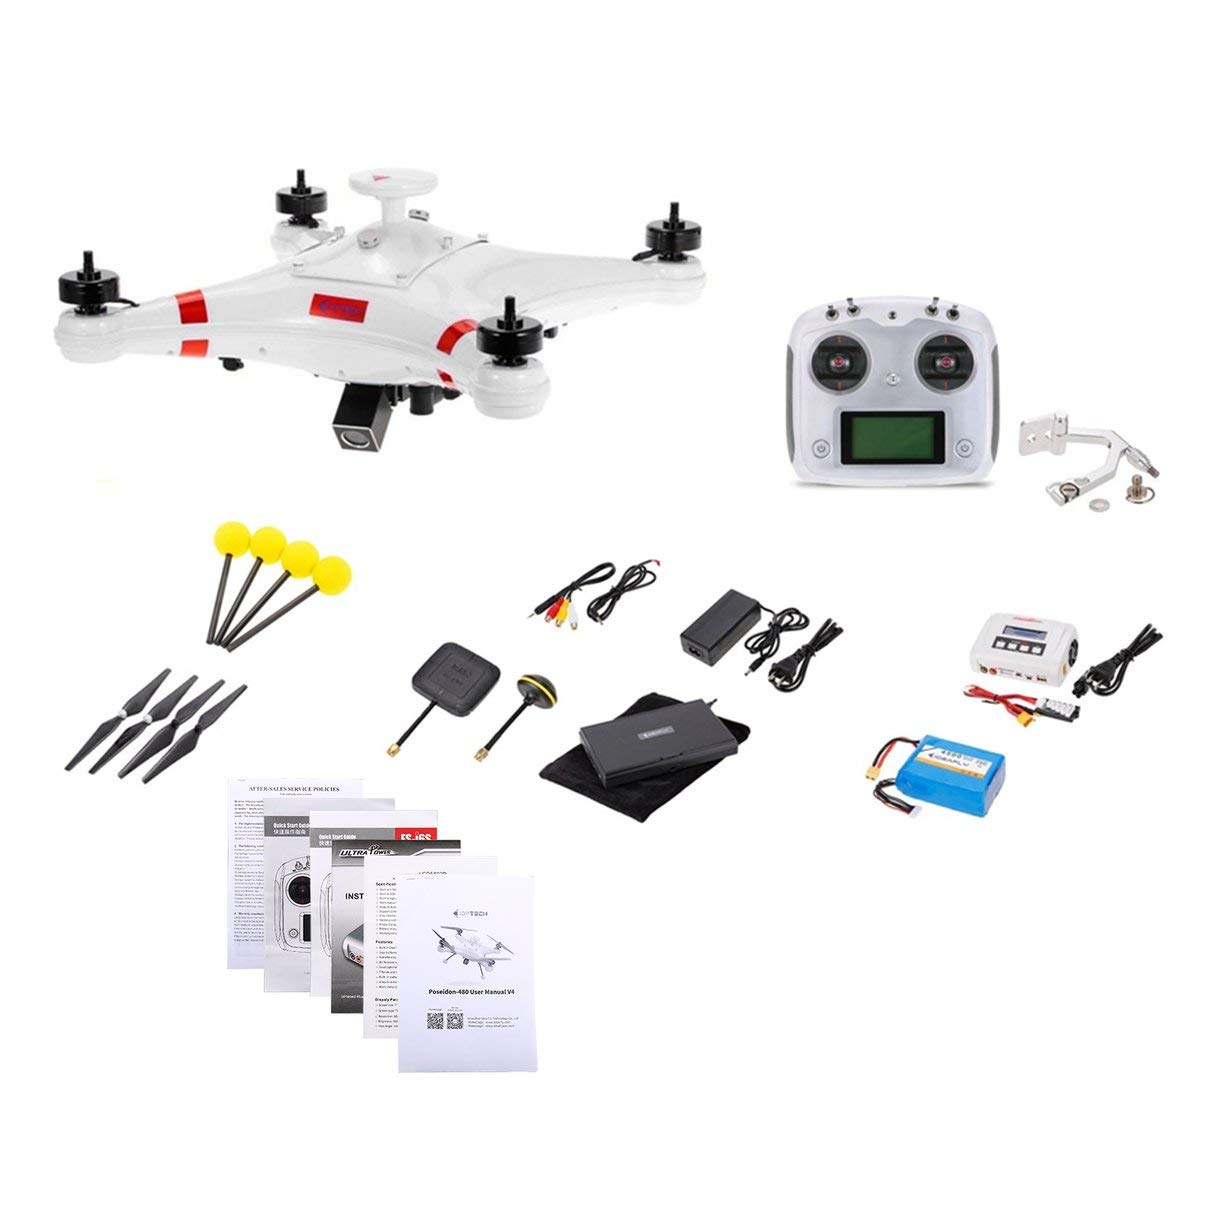 Detectoy IDEAFLY Poseidon-480 Brushless 5.8G FPV 700TVL Camera GPS Quadcopter with OSD Waterproof Professional Fishing RC Drone